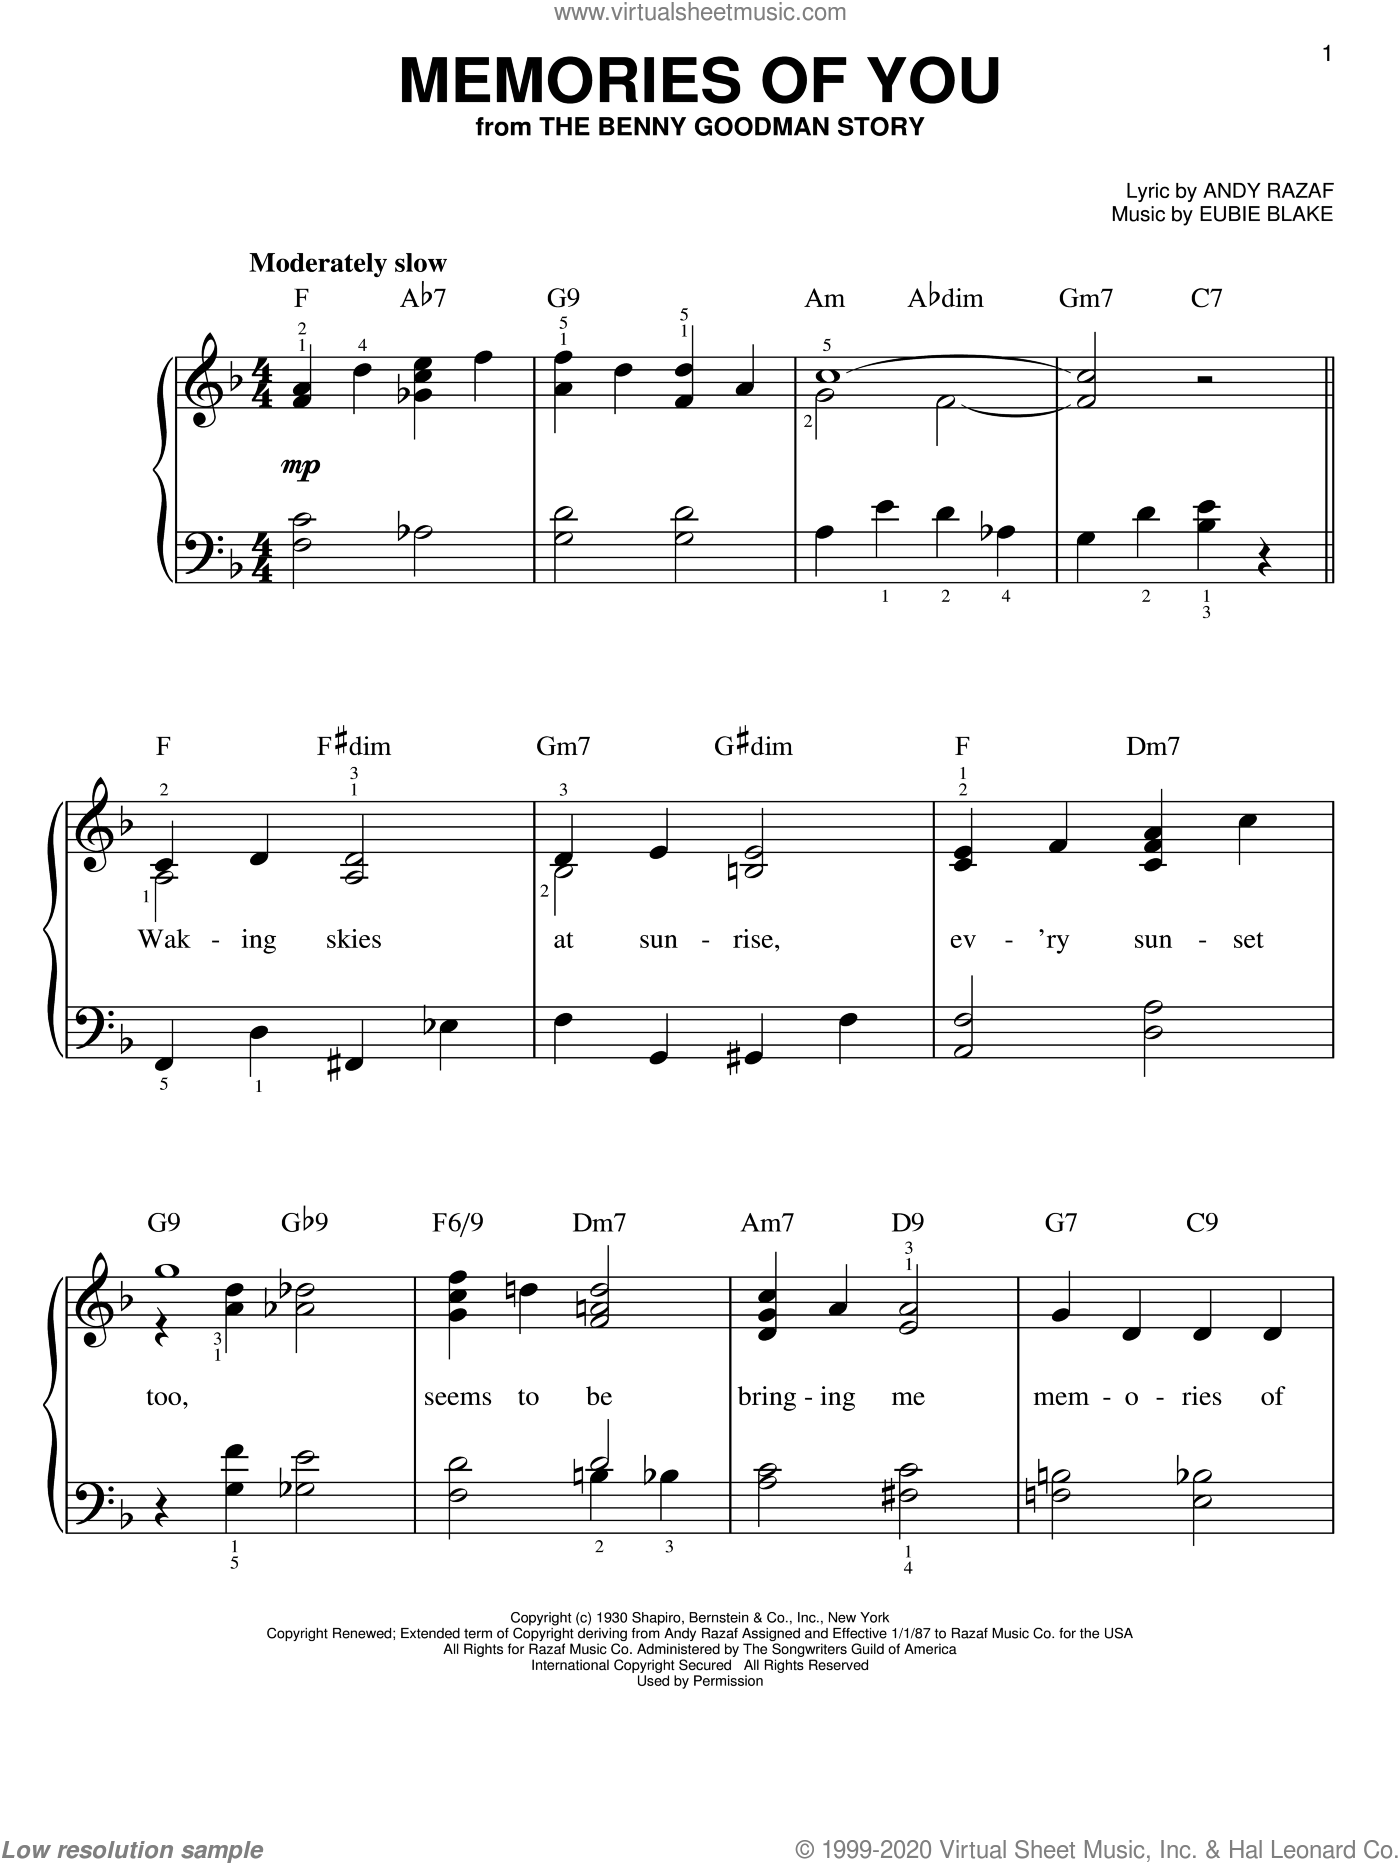 Memories Of You sheet music for piano solo by Eubie Blake